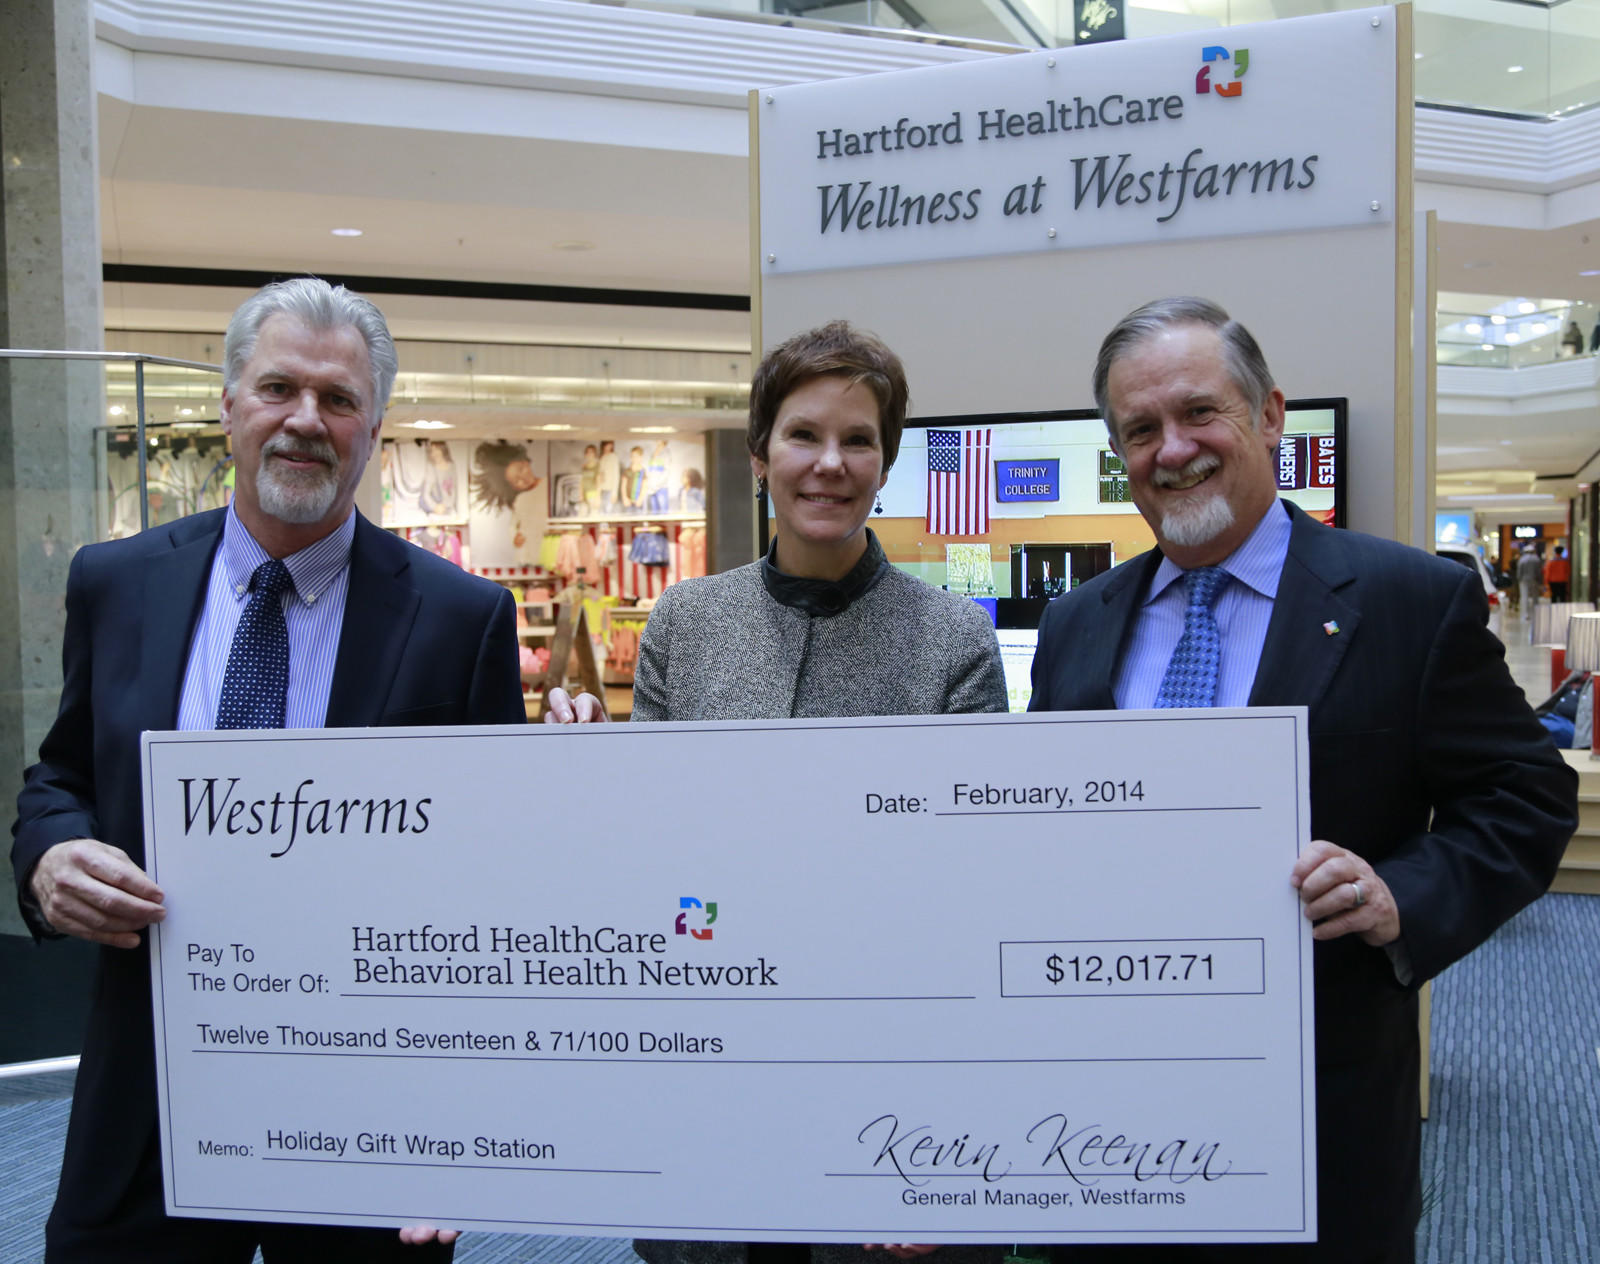 HHC BHN Senior Vice President Stephen W. Larcen, PhD., right, accepts a check for the donation from Westfarms General Manager Kevin Keenan and Westfarms Marketing and Sponsorship Director Sarah Williams.